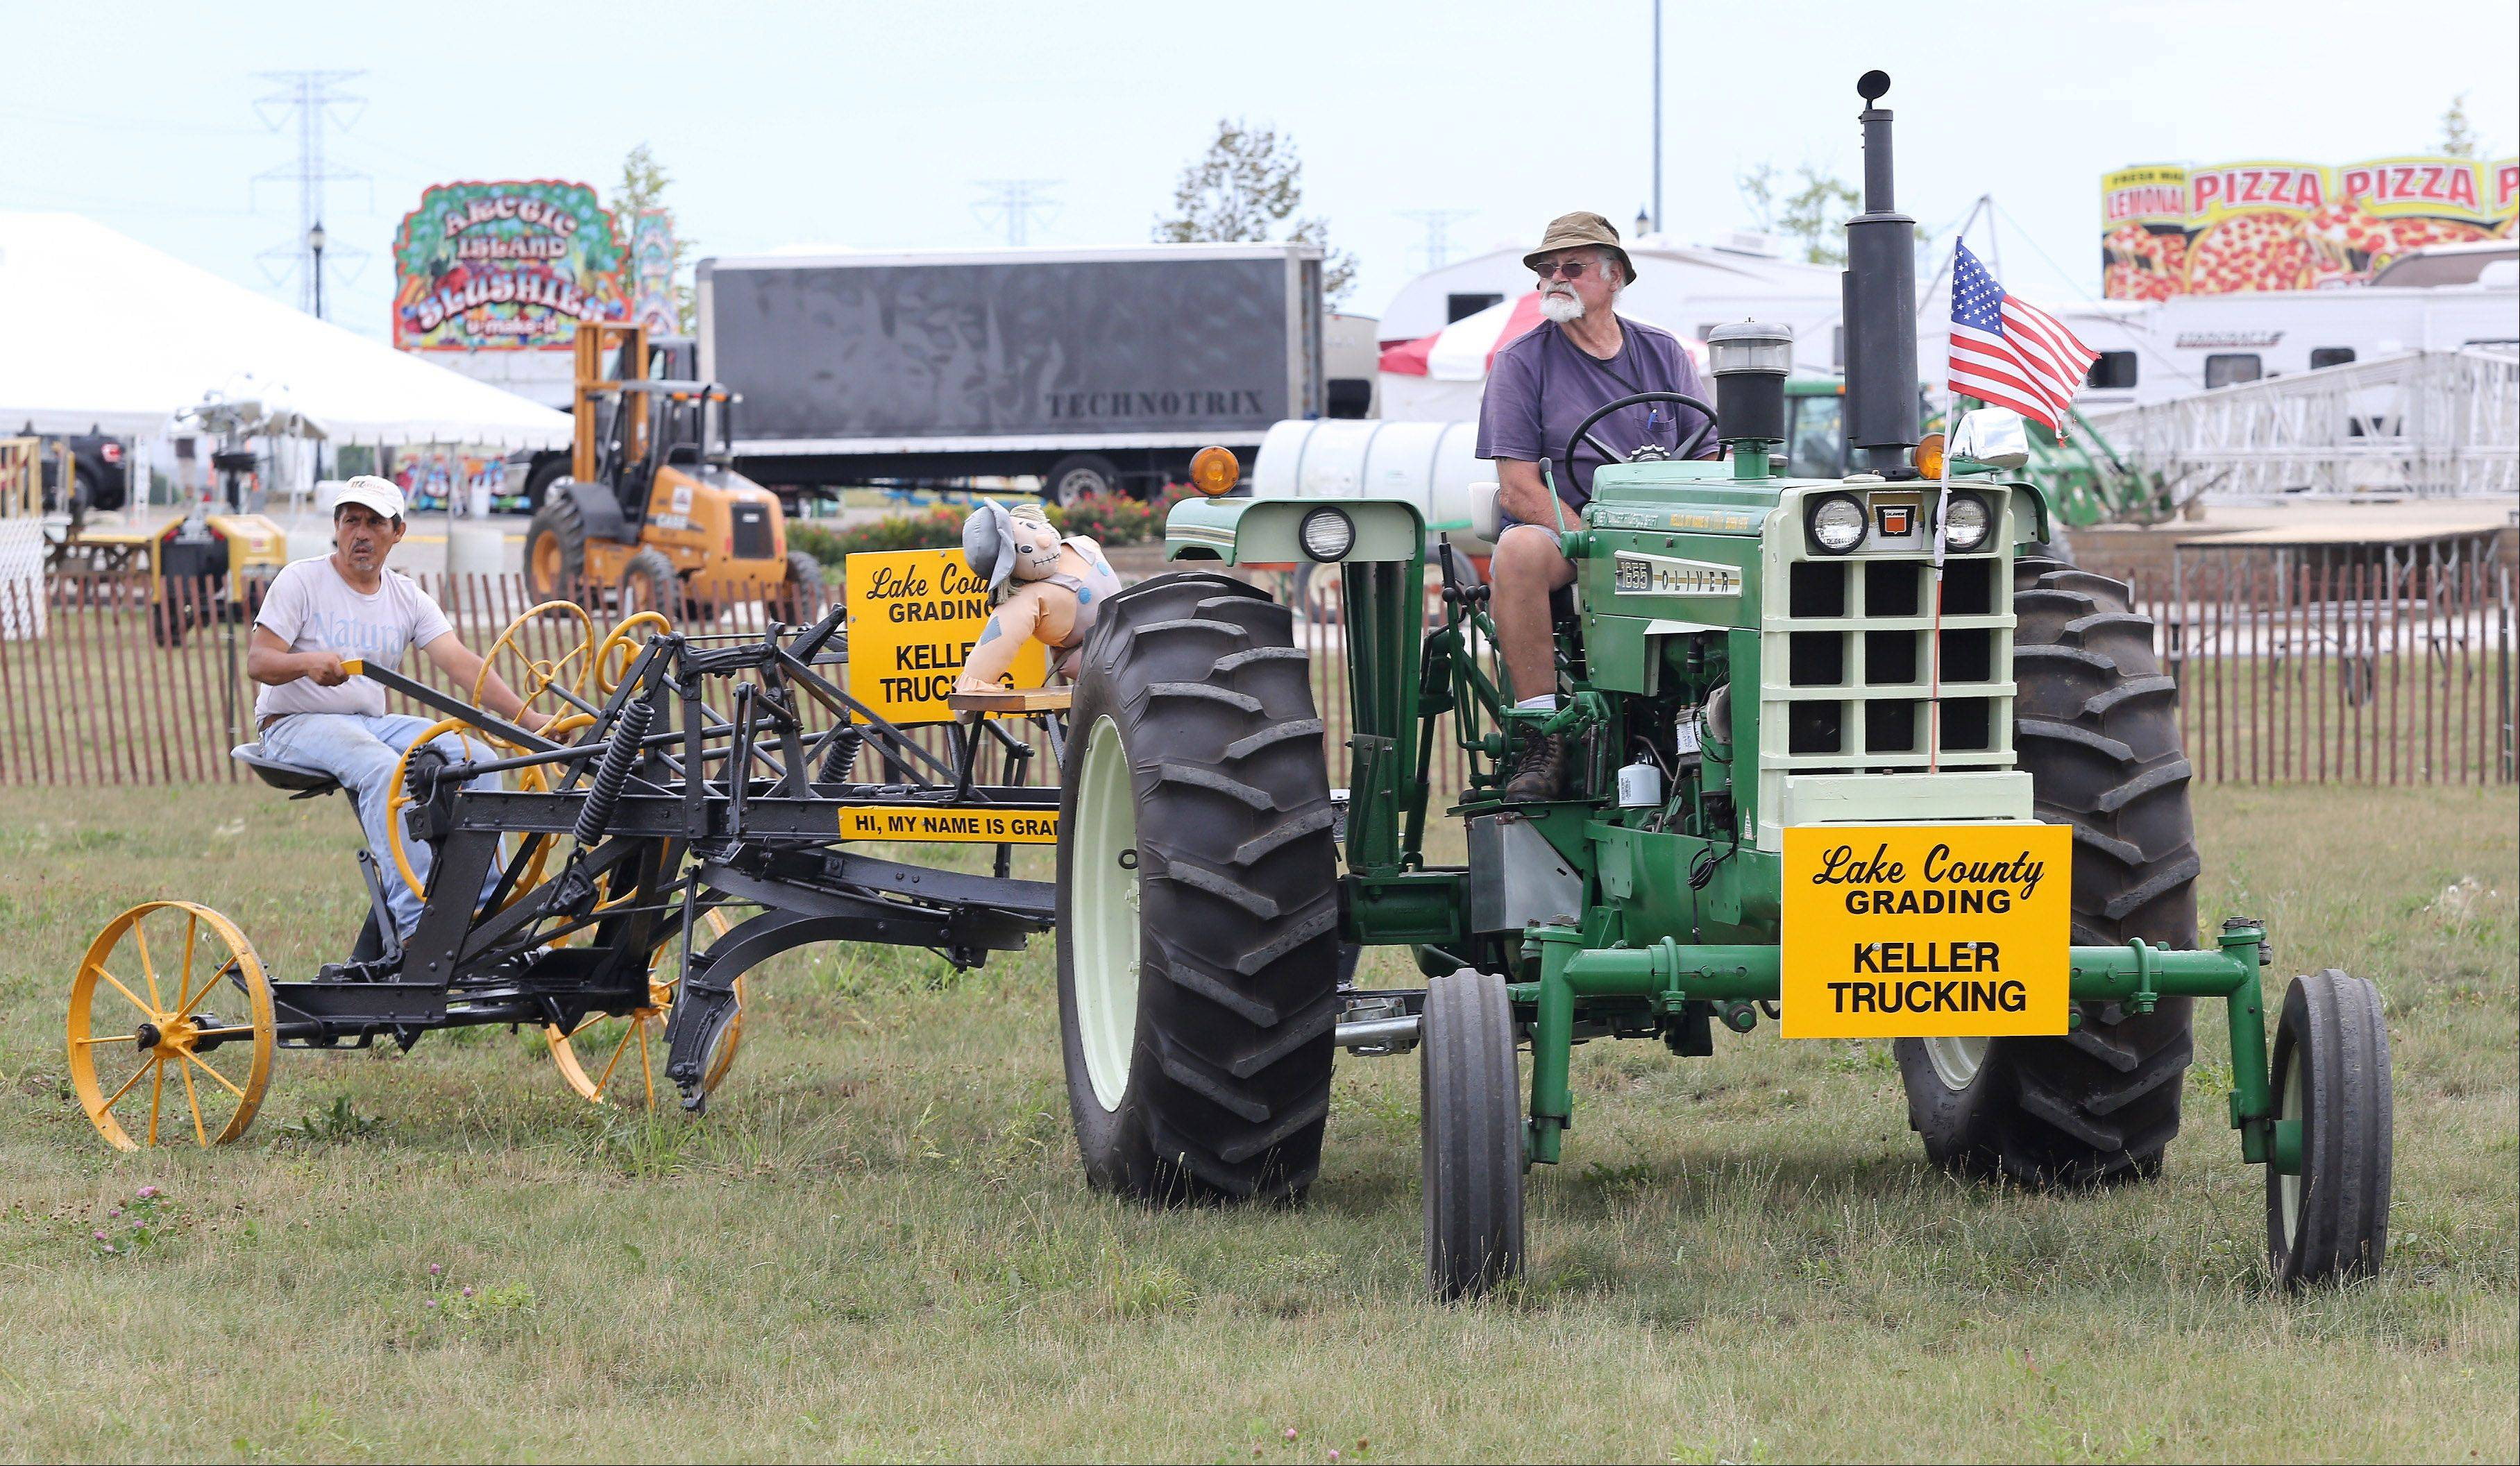 John Paulson of Keller Trucking, right, and Luis Diaz drive a 1976 Oliver tractor with a 1918 grader into the Lake County Farm Heritage Association, Inc. exhibit Tuesday at the Lake County Fair in Grayslake.